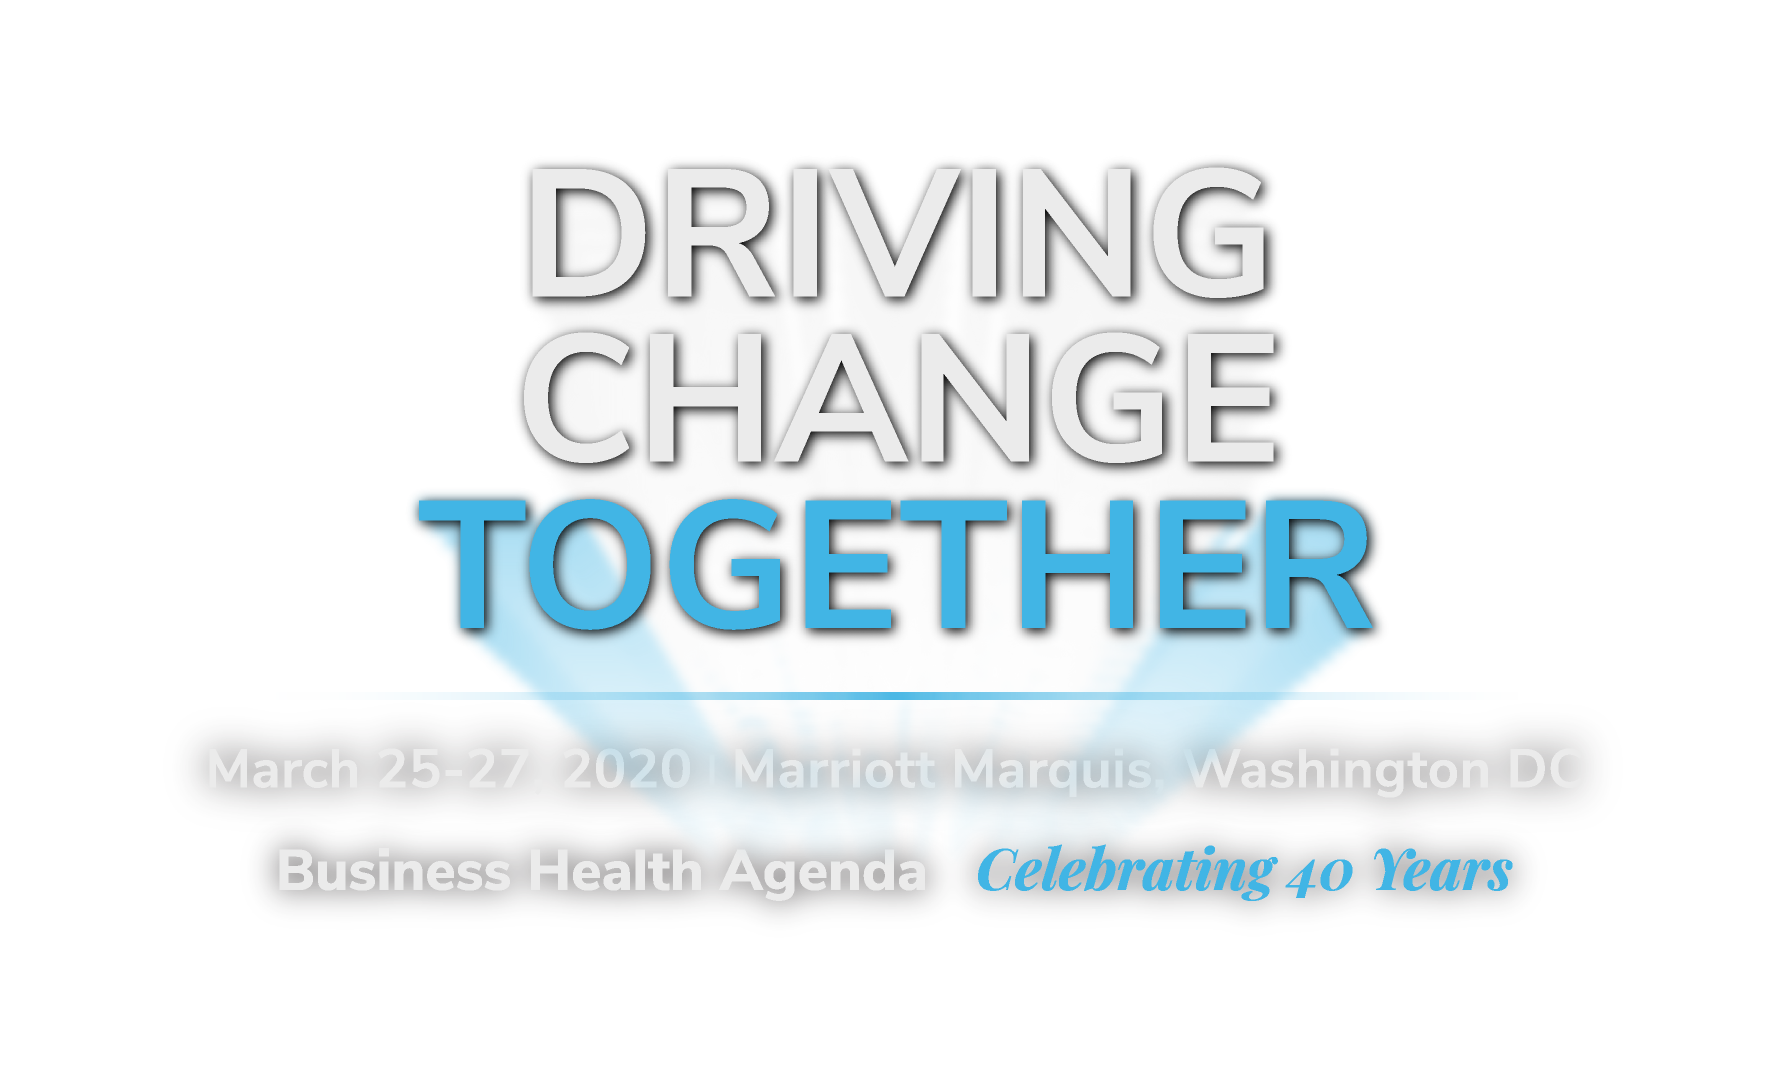 Driving Change Together - March 25-27, 2020 | Marriot Marquis, Washington DC | Business Health Agenda | Celebrating 40 years